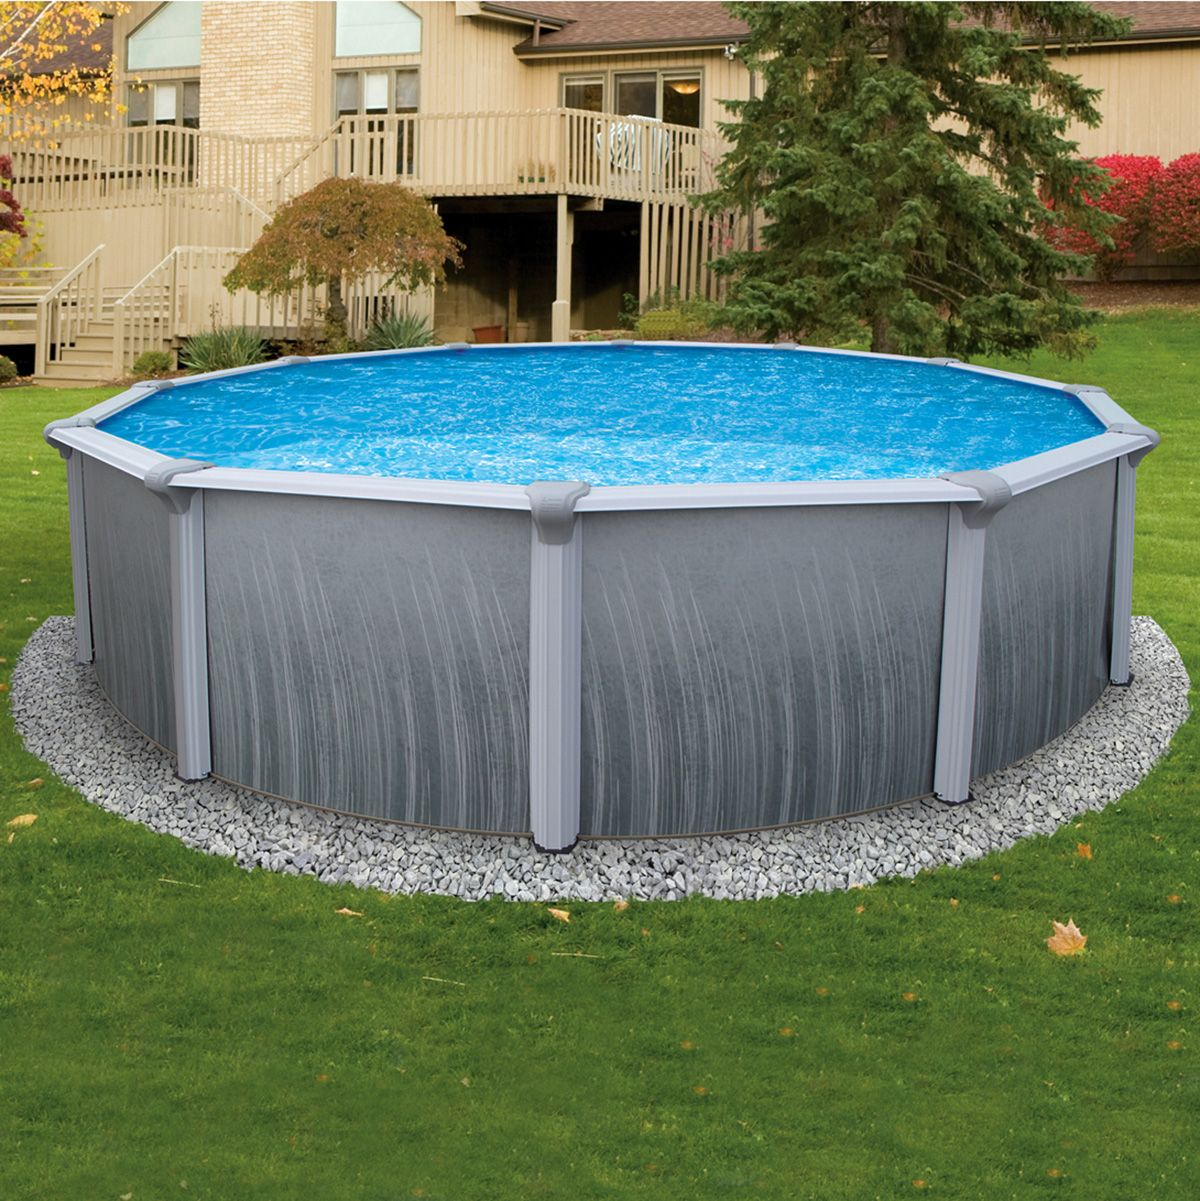 Preparing Your Pool for Severe Summer Weather